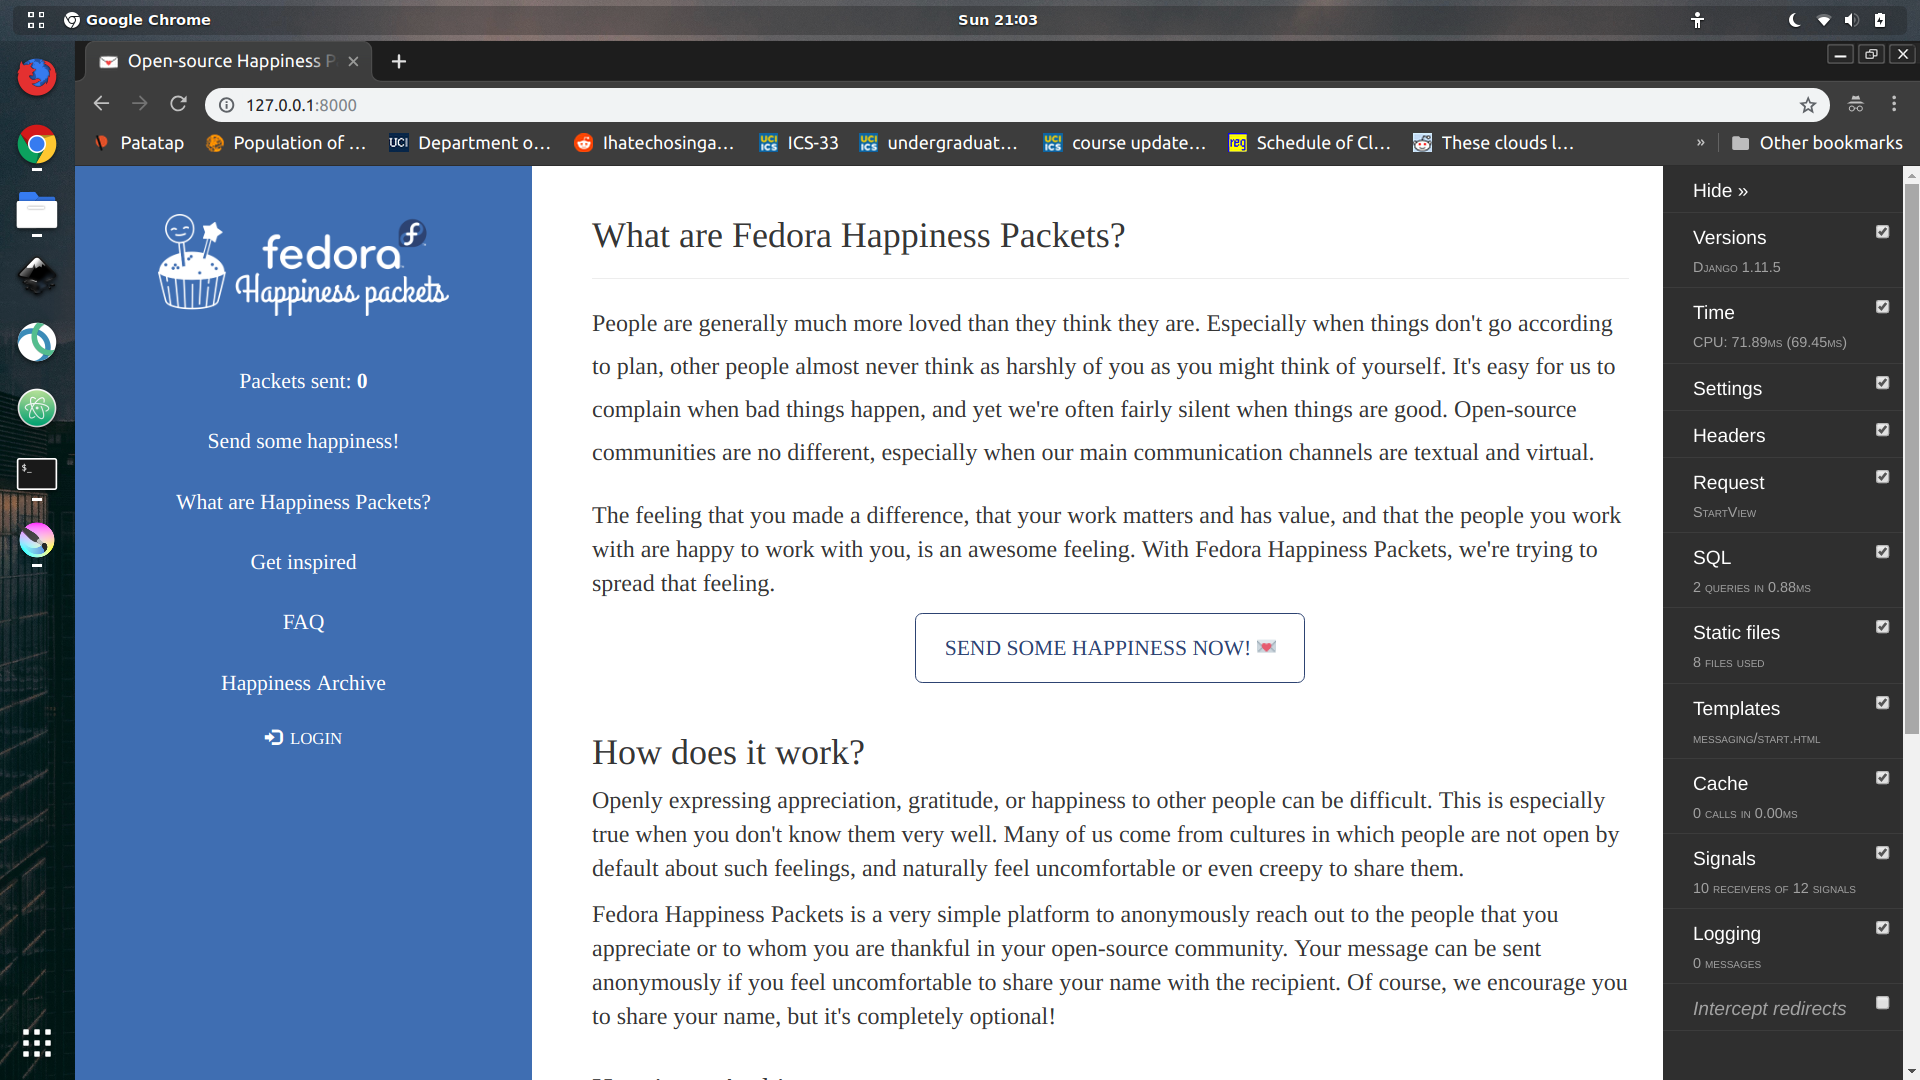 fedora_happiness_packets.png